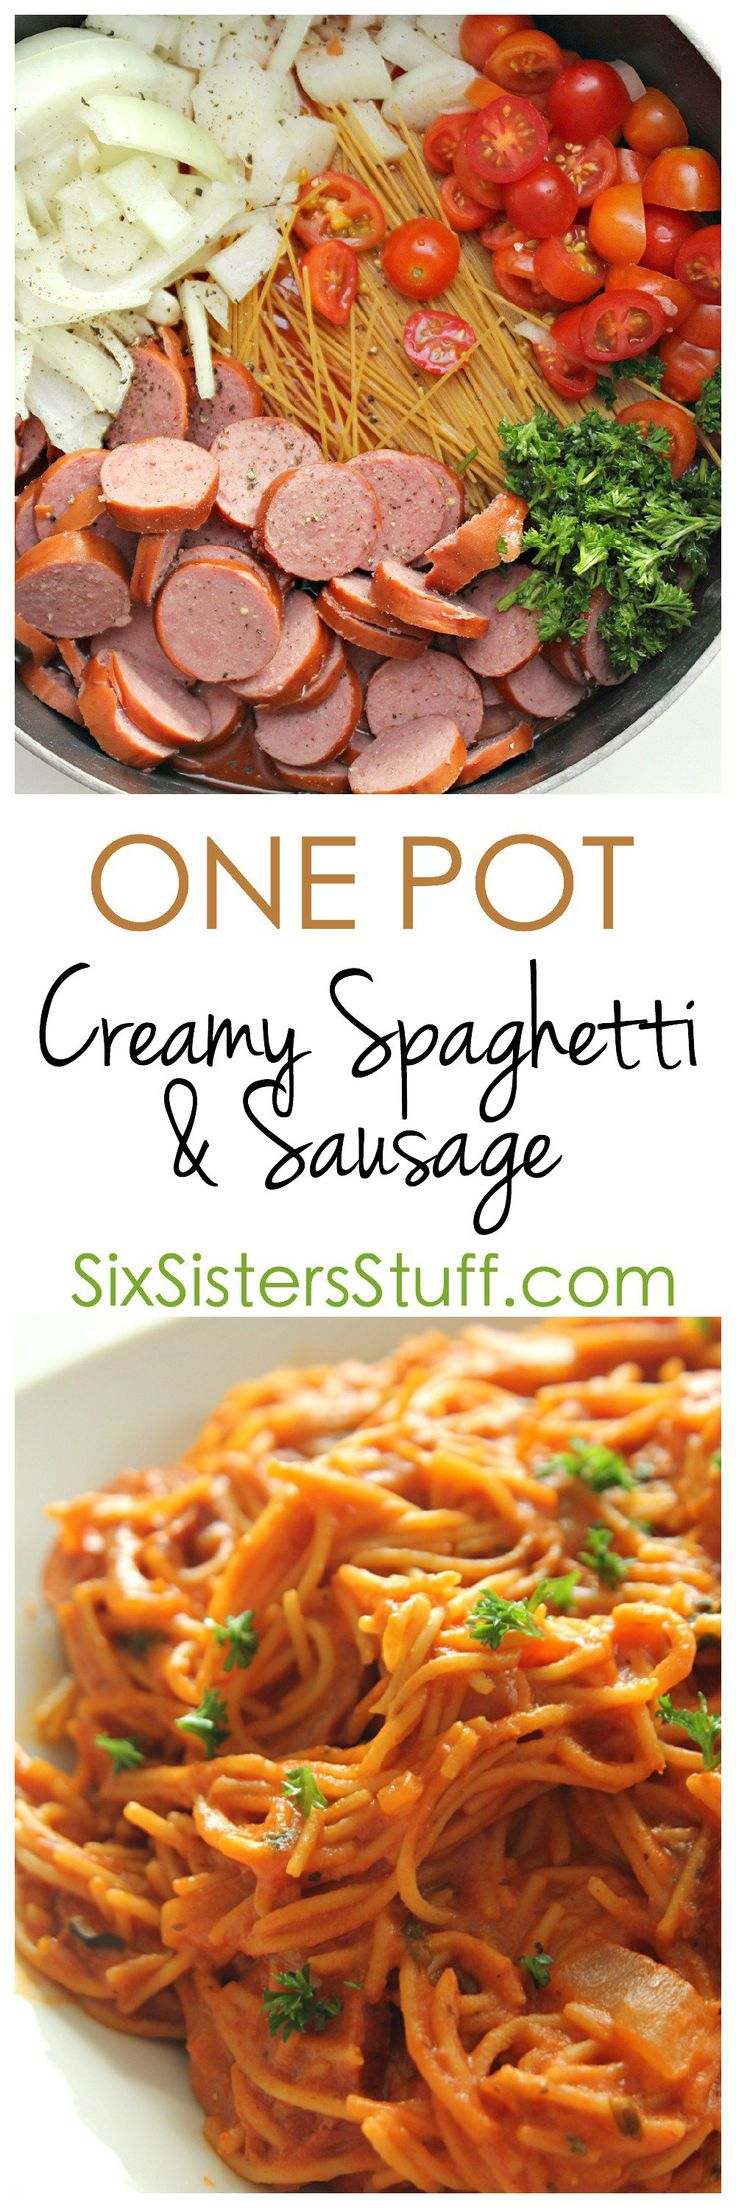 One Pot Creamy Spaghetti and Sausage Skillet from SixSistersStuff